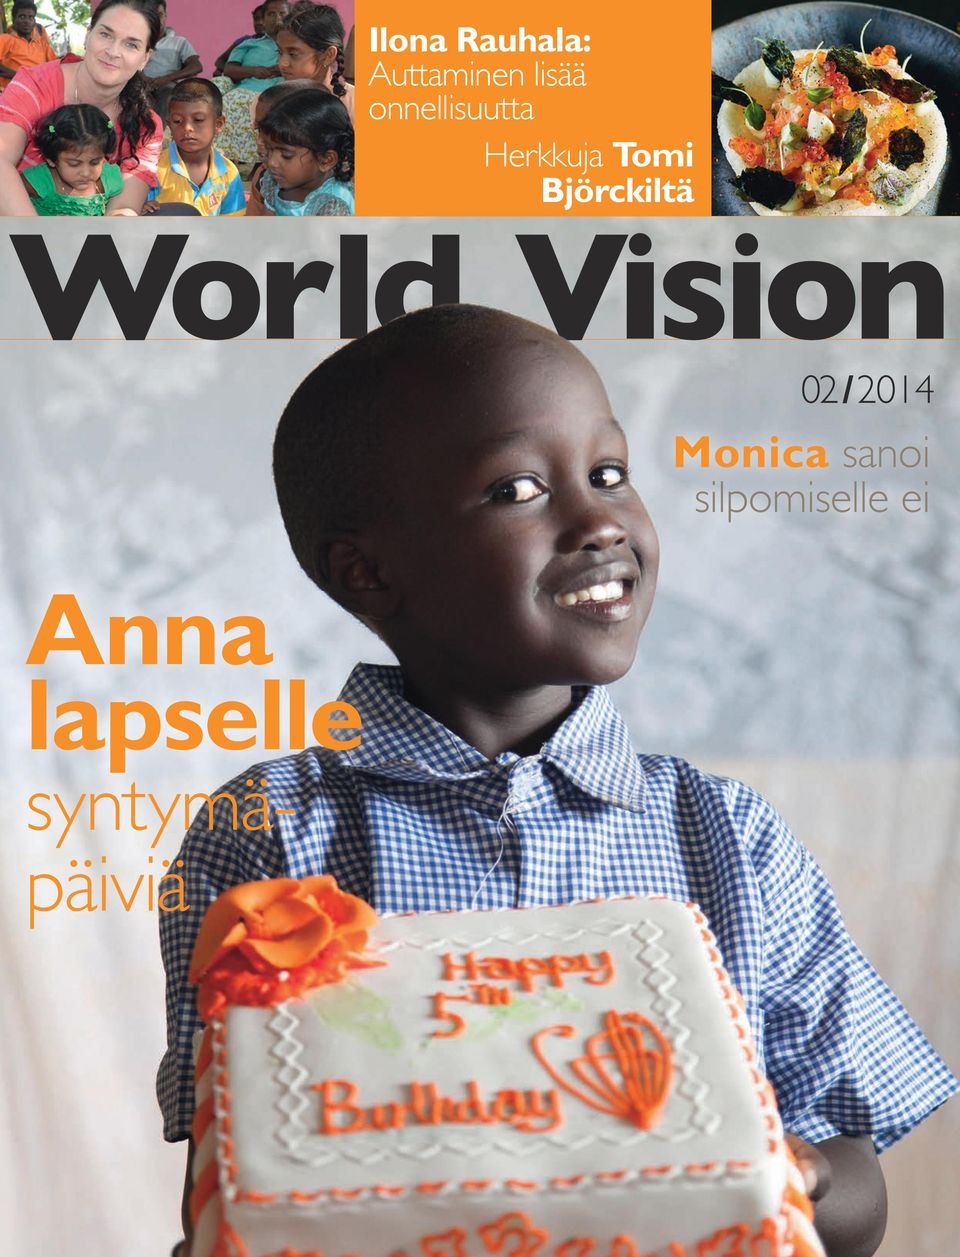 Björckiltä World Vision 02 /2014